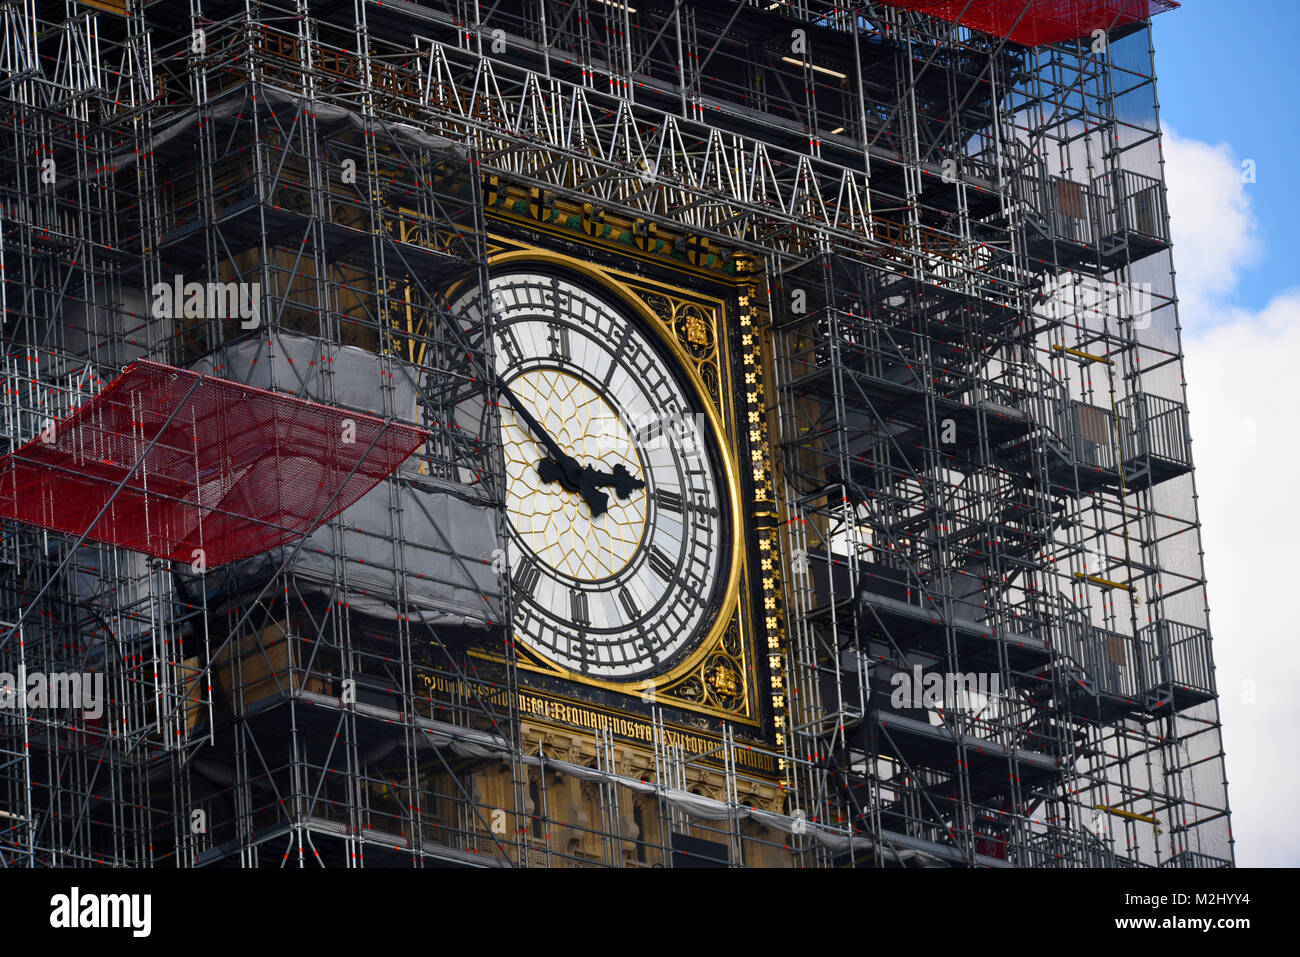 Scaffolding enveloping Big Ben Elizabeth Tower Palace of Westminster Houses of Parliament for restorations renovations - Stock Image